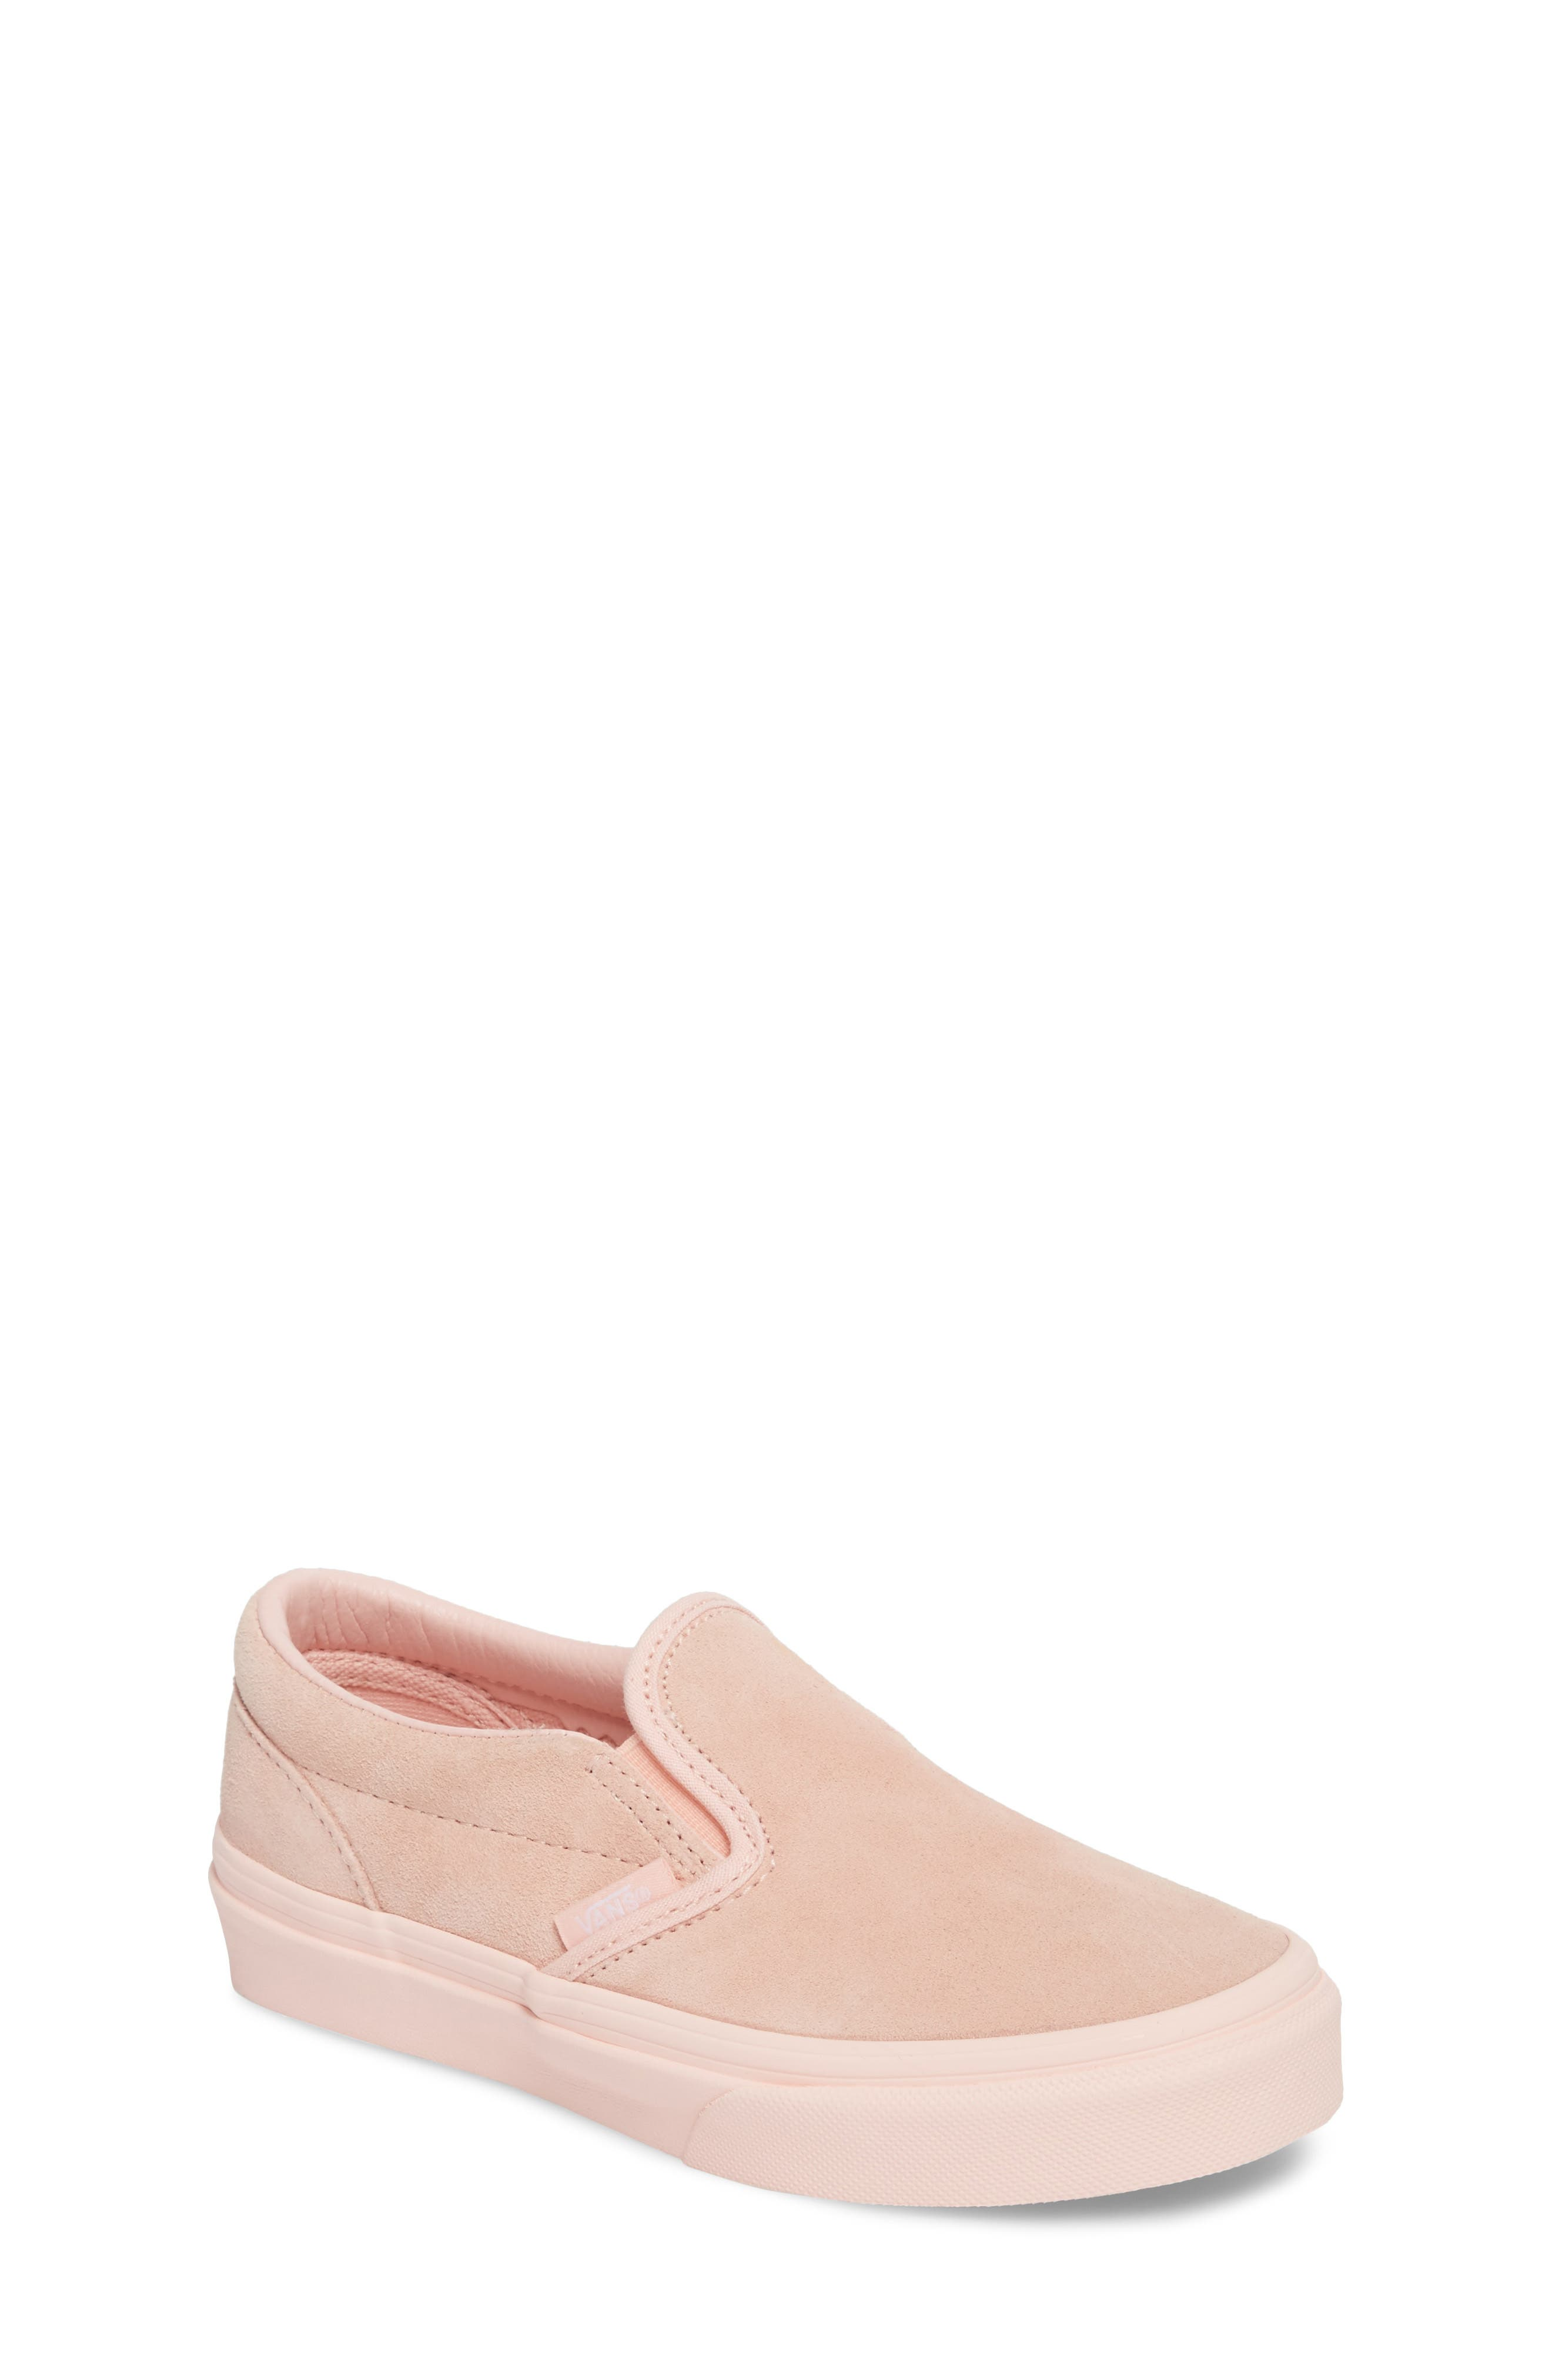 Classic Slip-On Sneaker,                         Main,                         color, Suede Mono/ English Rose